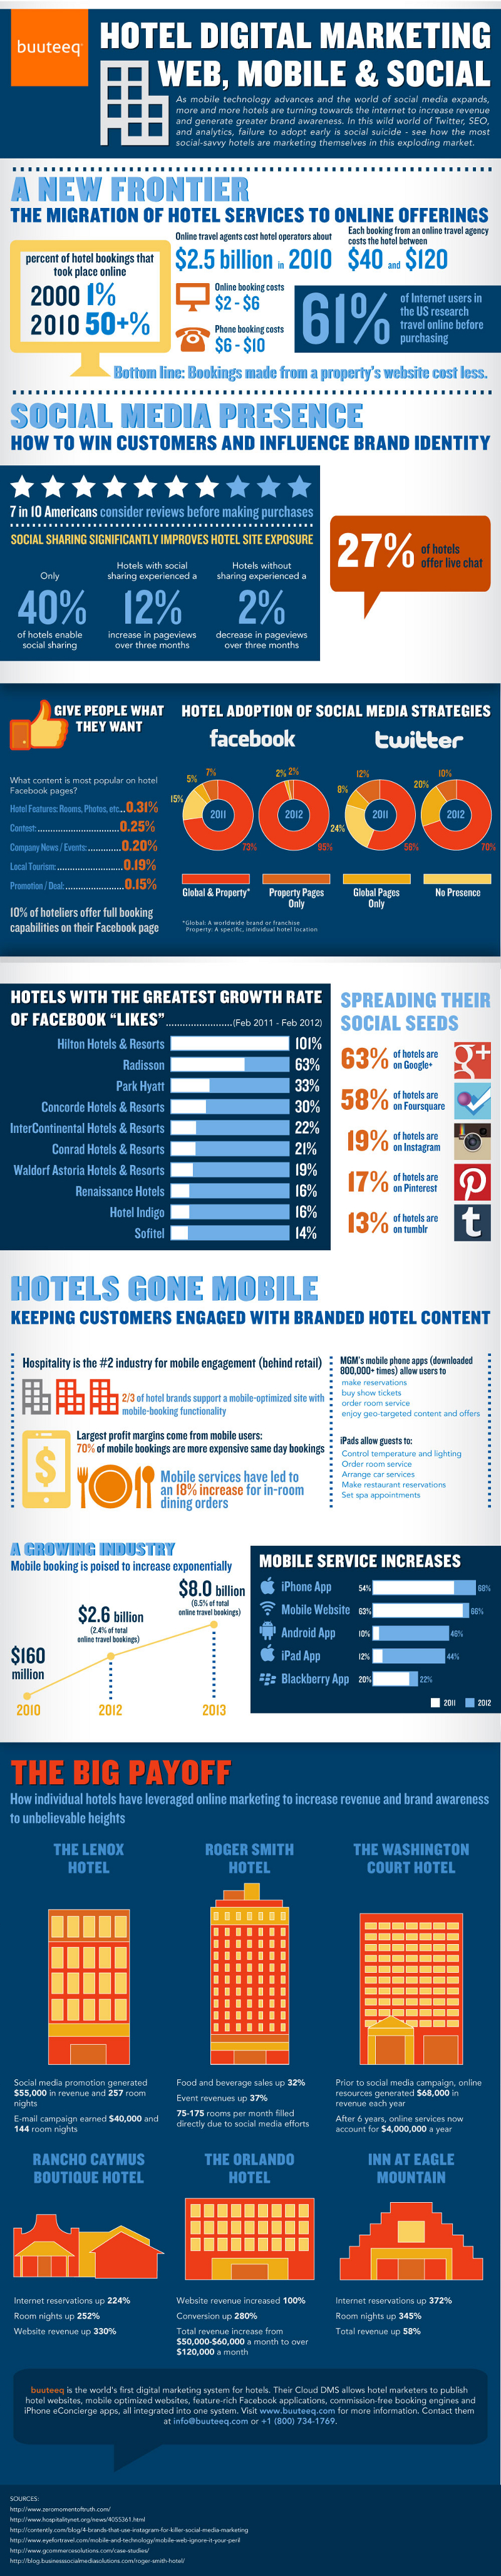 examples of catchy hotel slogans and taglines com hotel marketing social media